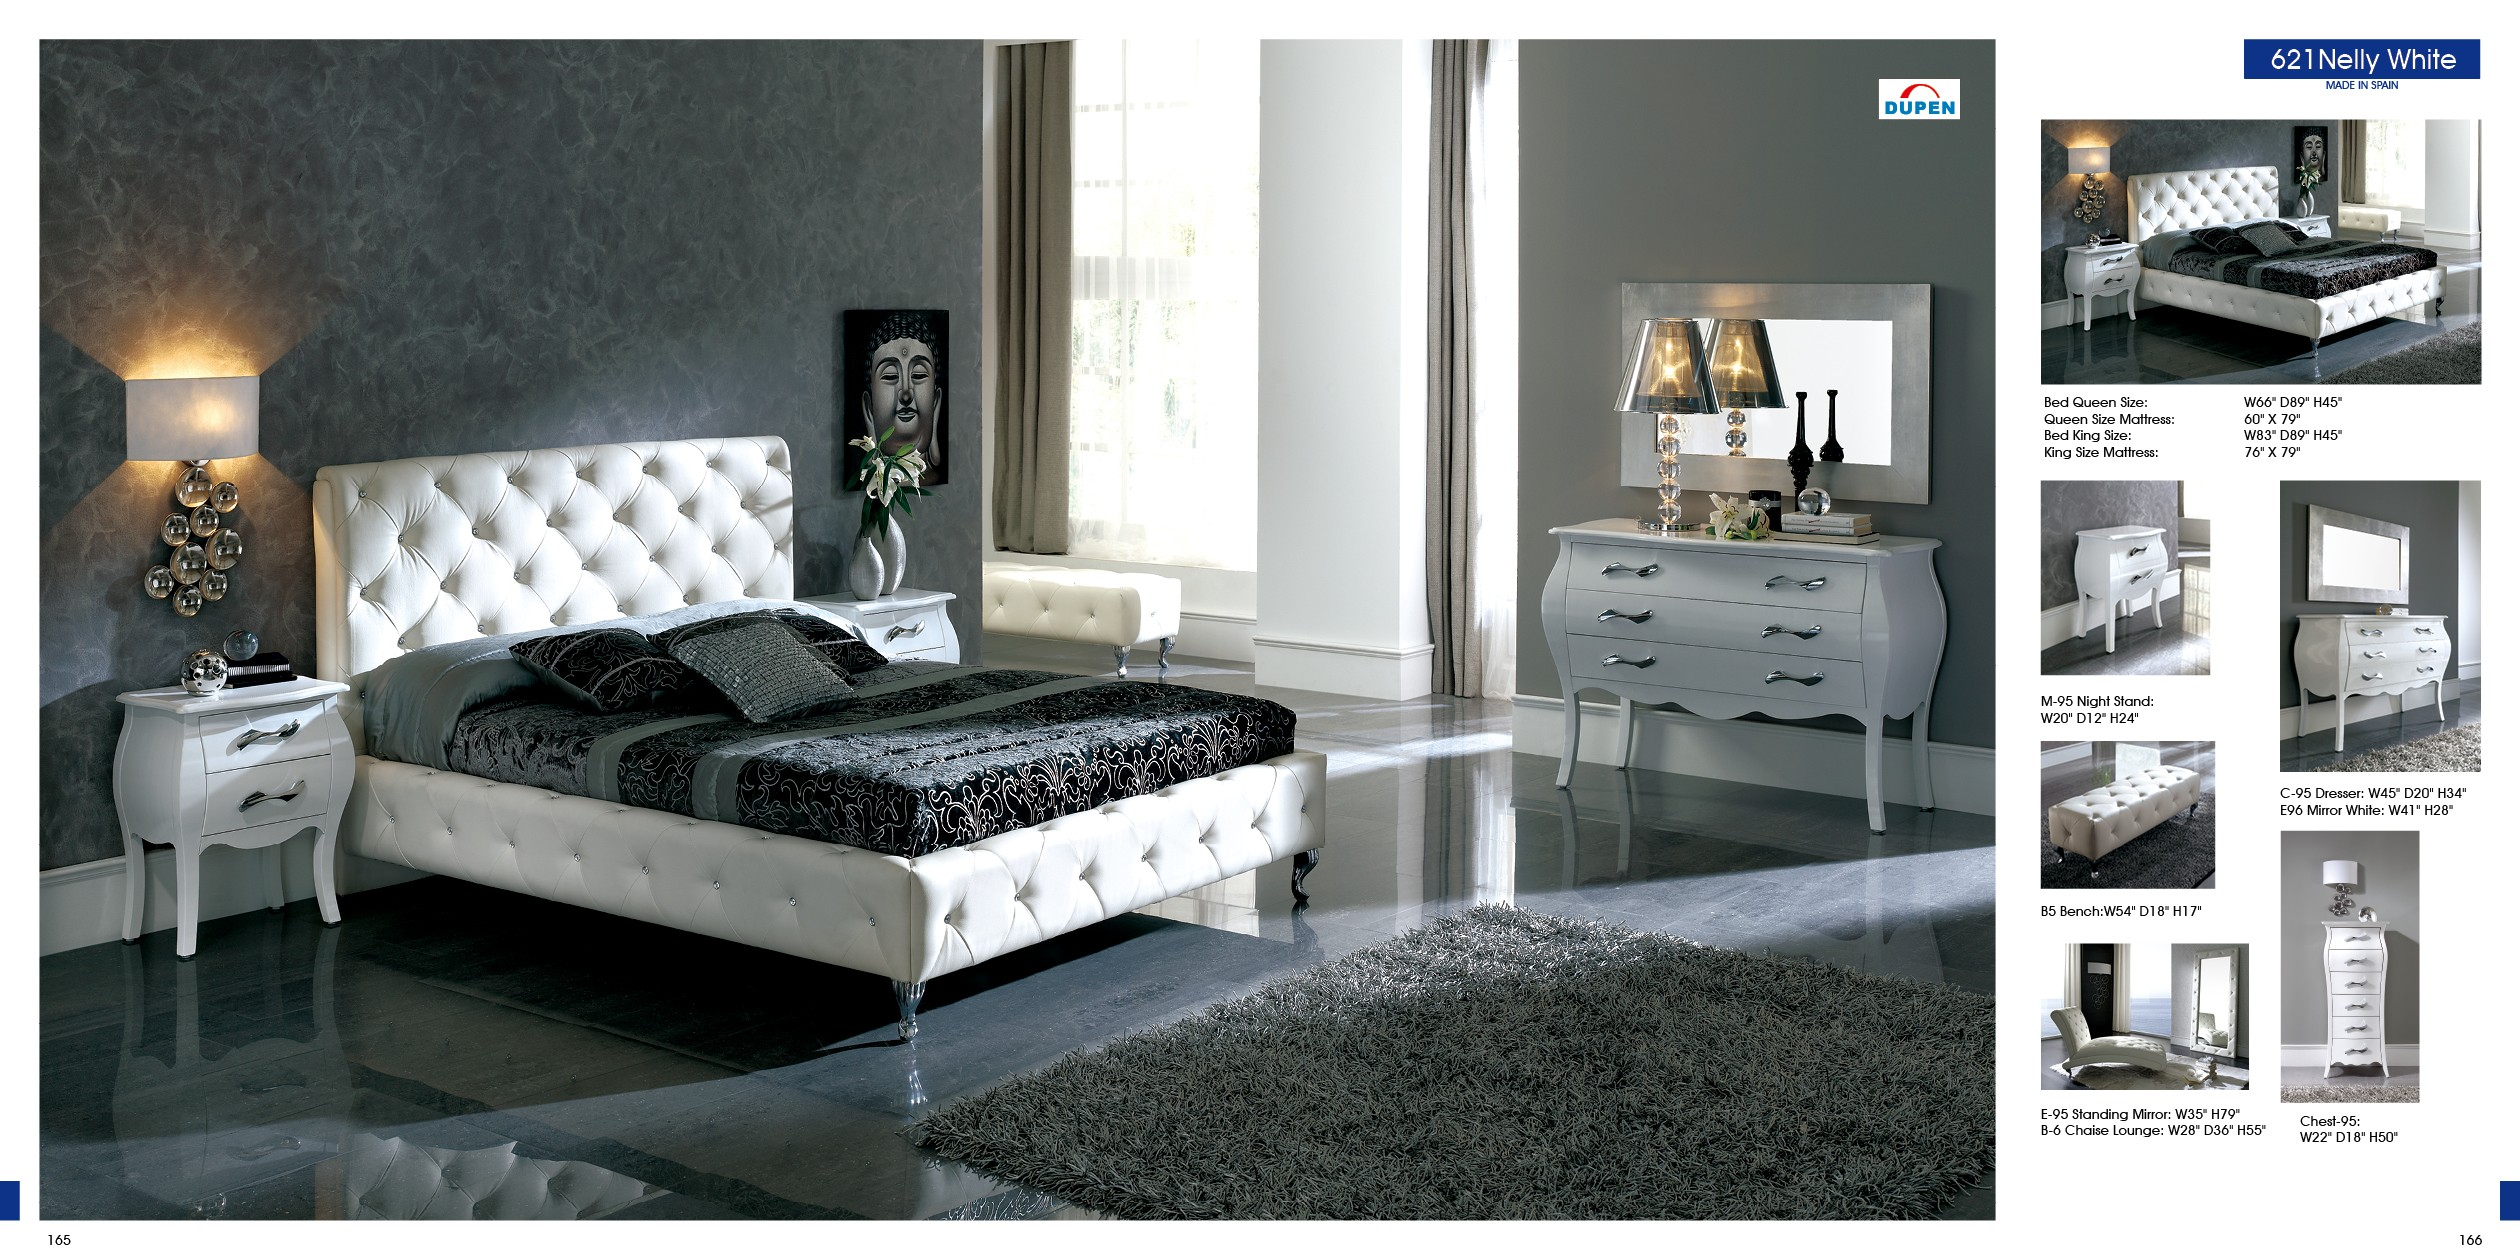 621 nelly by dupen white black made in spain modern 17826 | bedroom furniture modern bedrooms 621 nelly white m95 c95 e95 b5 s95 4